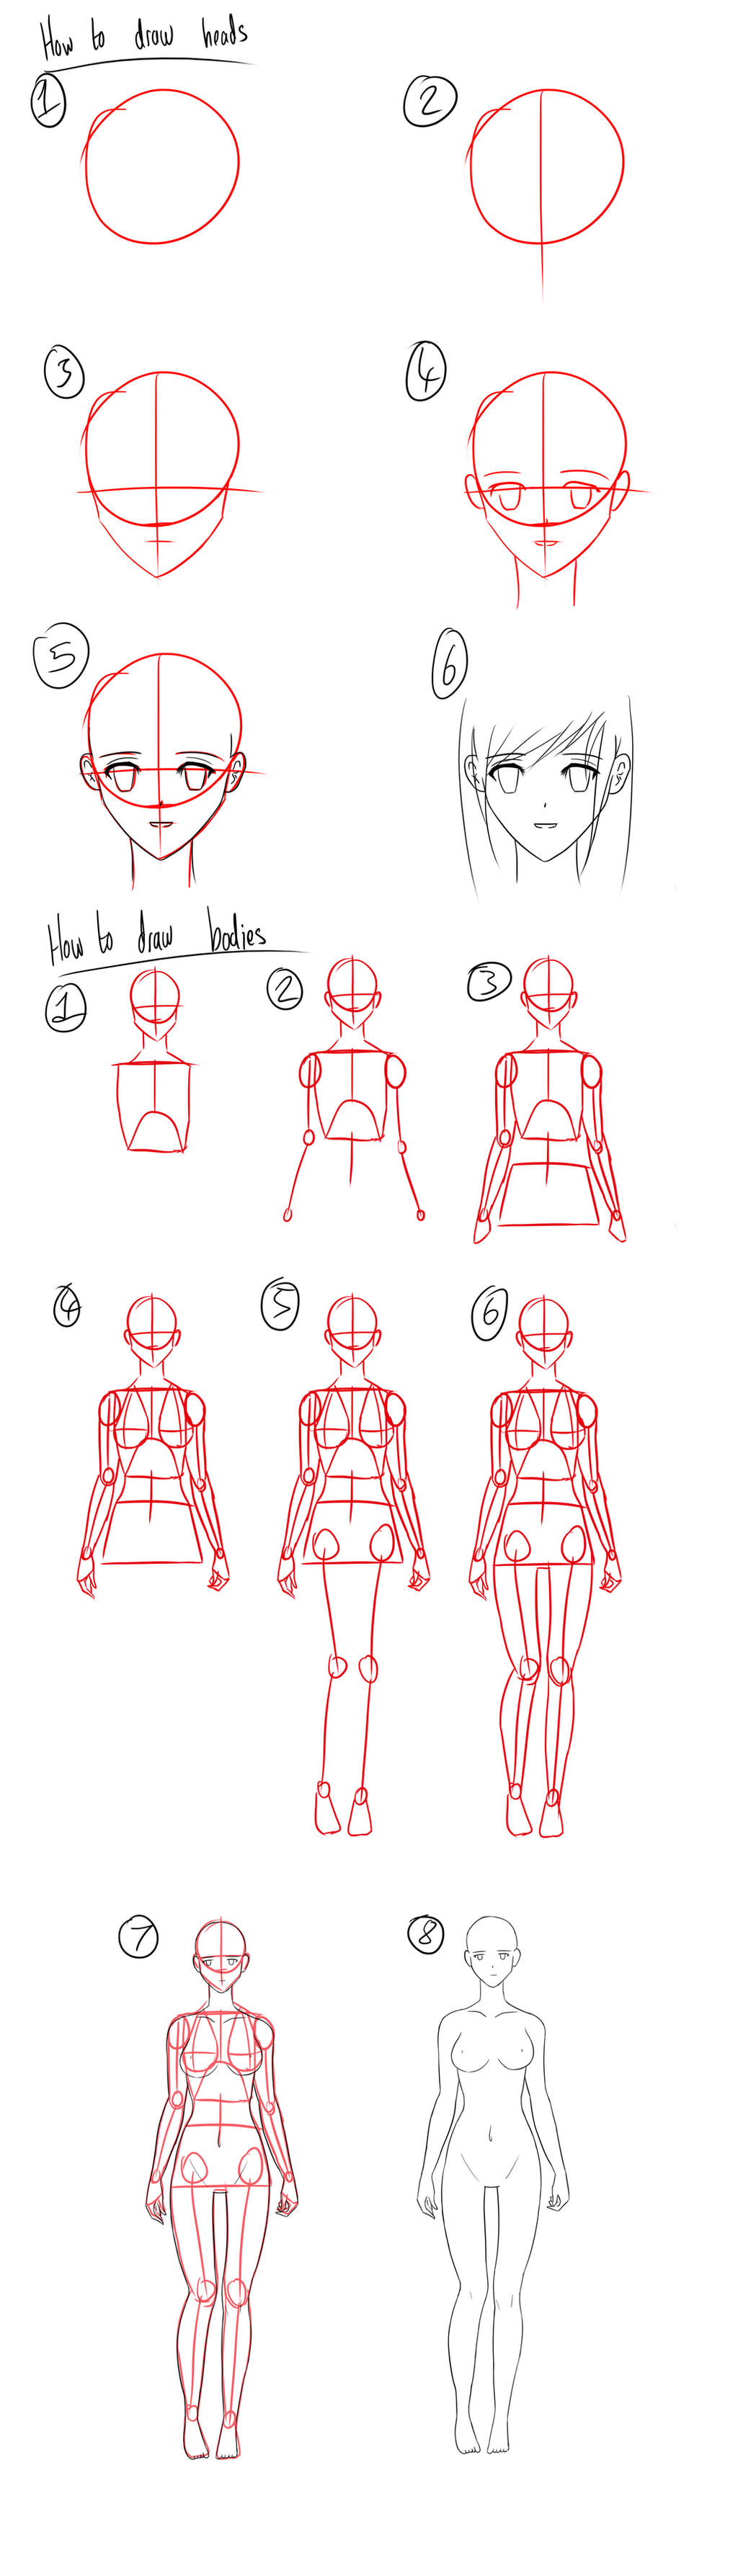 Tutorial - How to Draw Anime Heads/Female Bodies by Micky ...